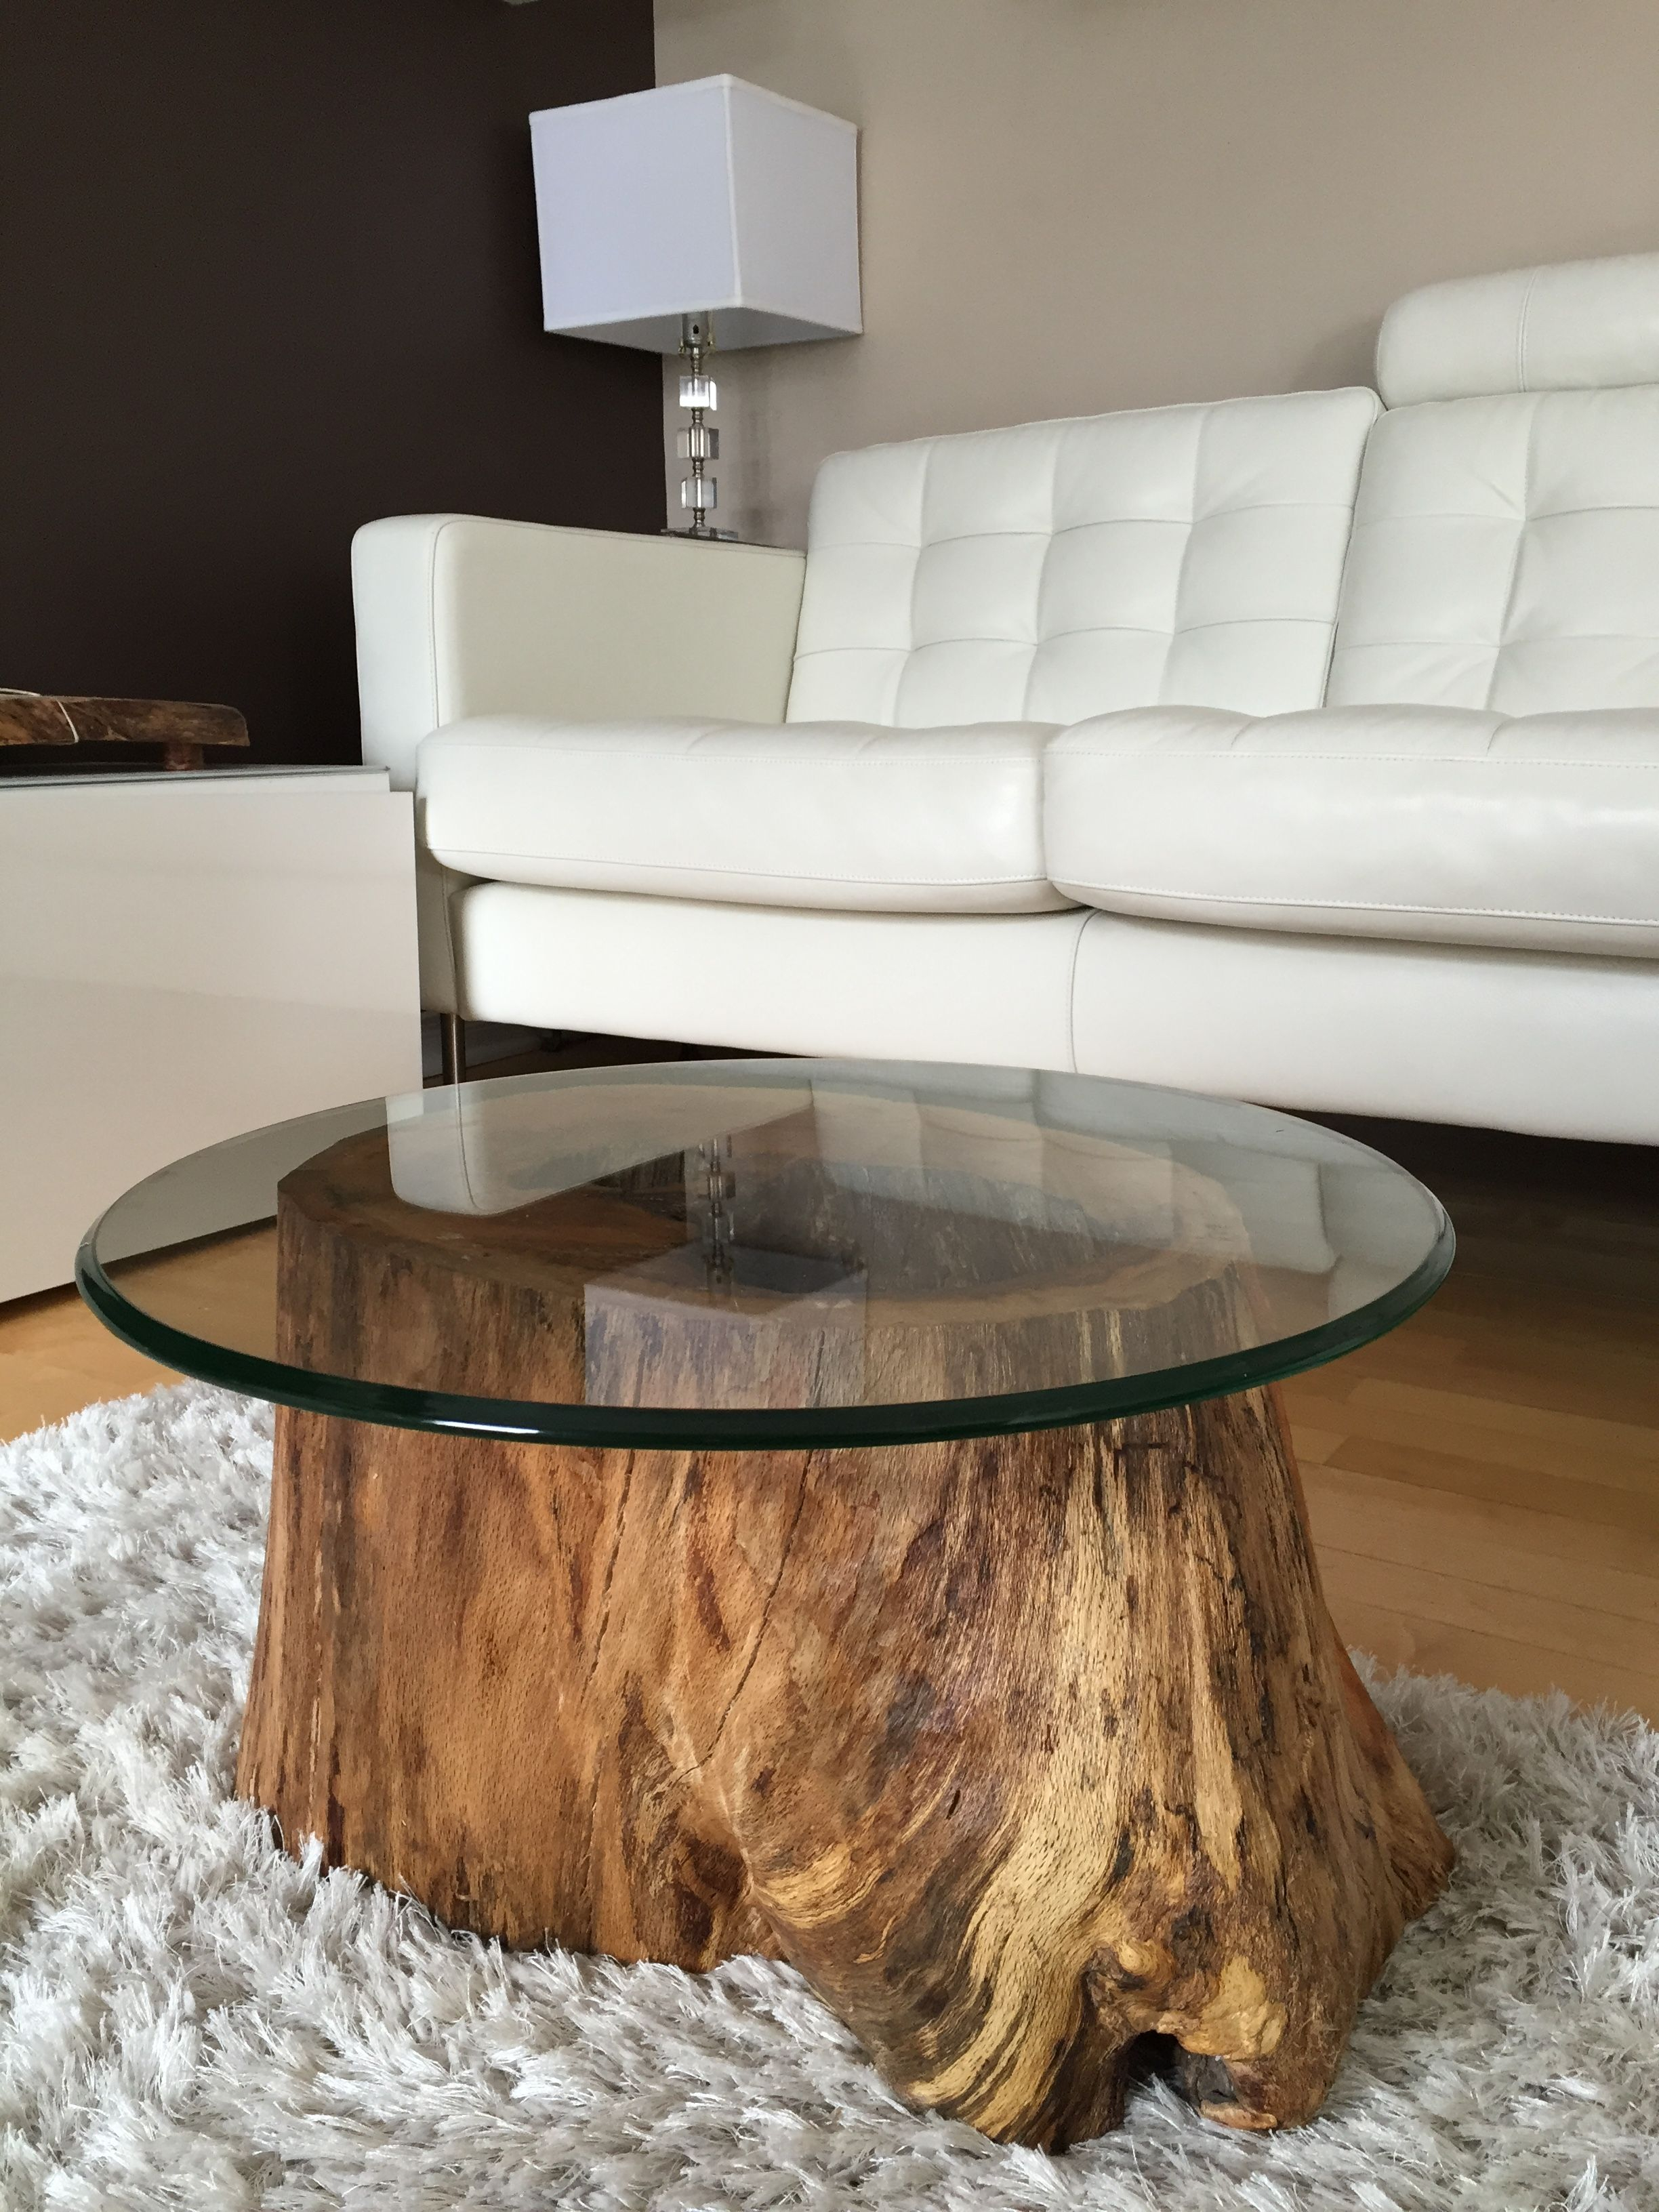 Root Coffee Tables Root Tables Log Furniture Large Wood Stump within size 2448 X 3264